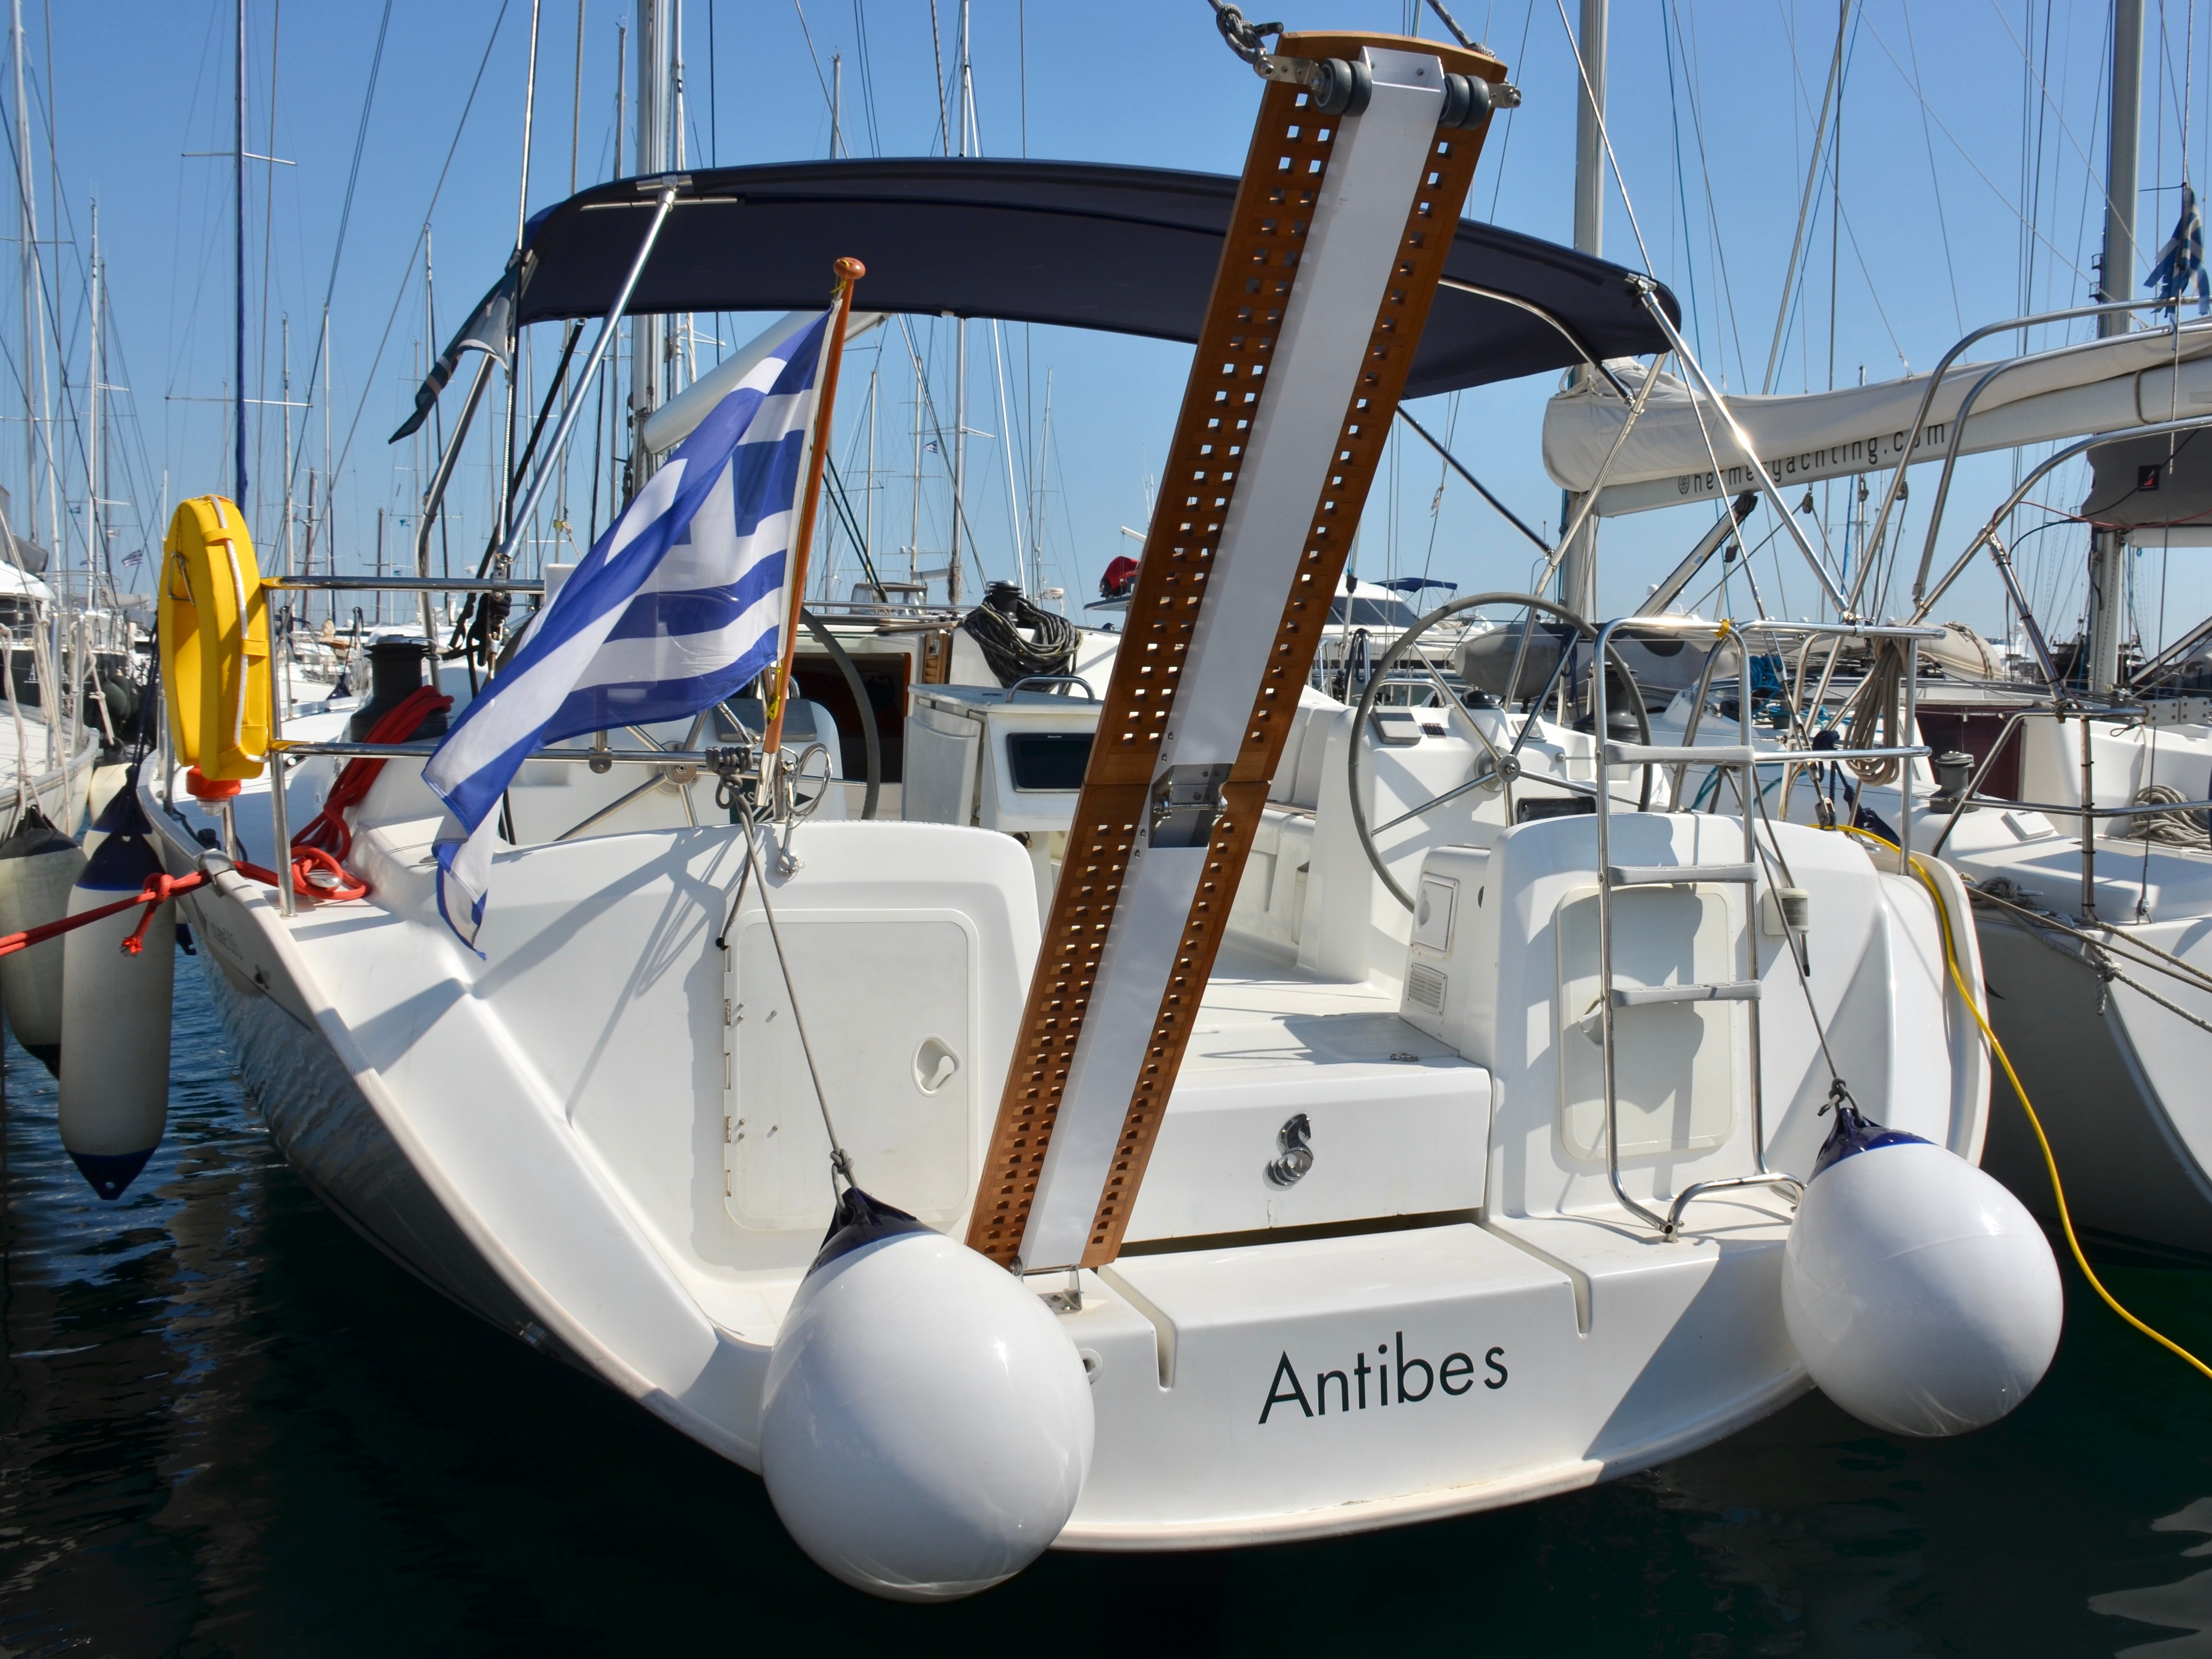 Antibes / Refit 2020 Cyclades 50.5